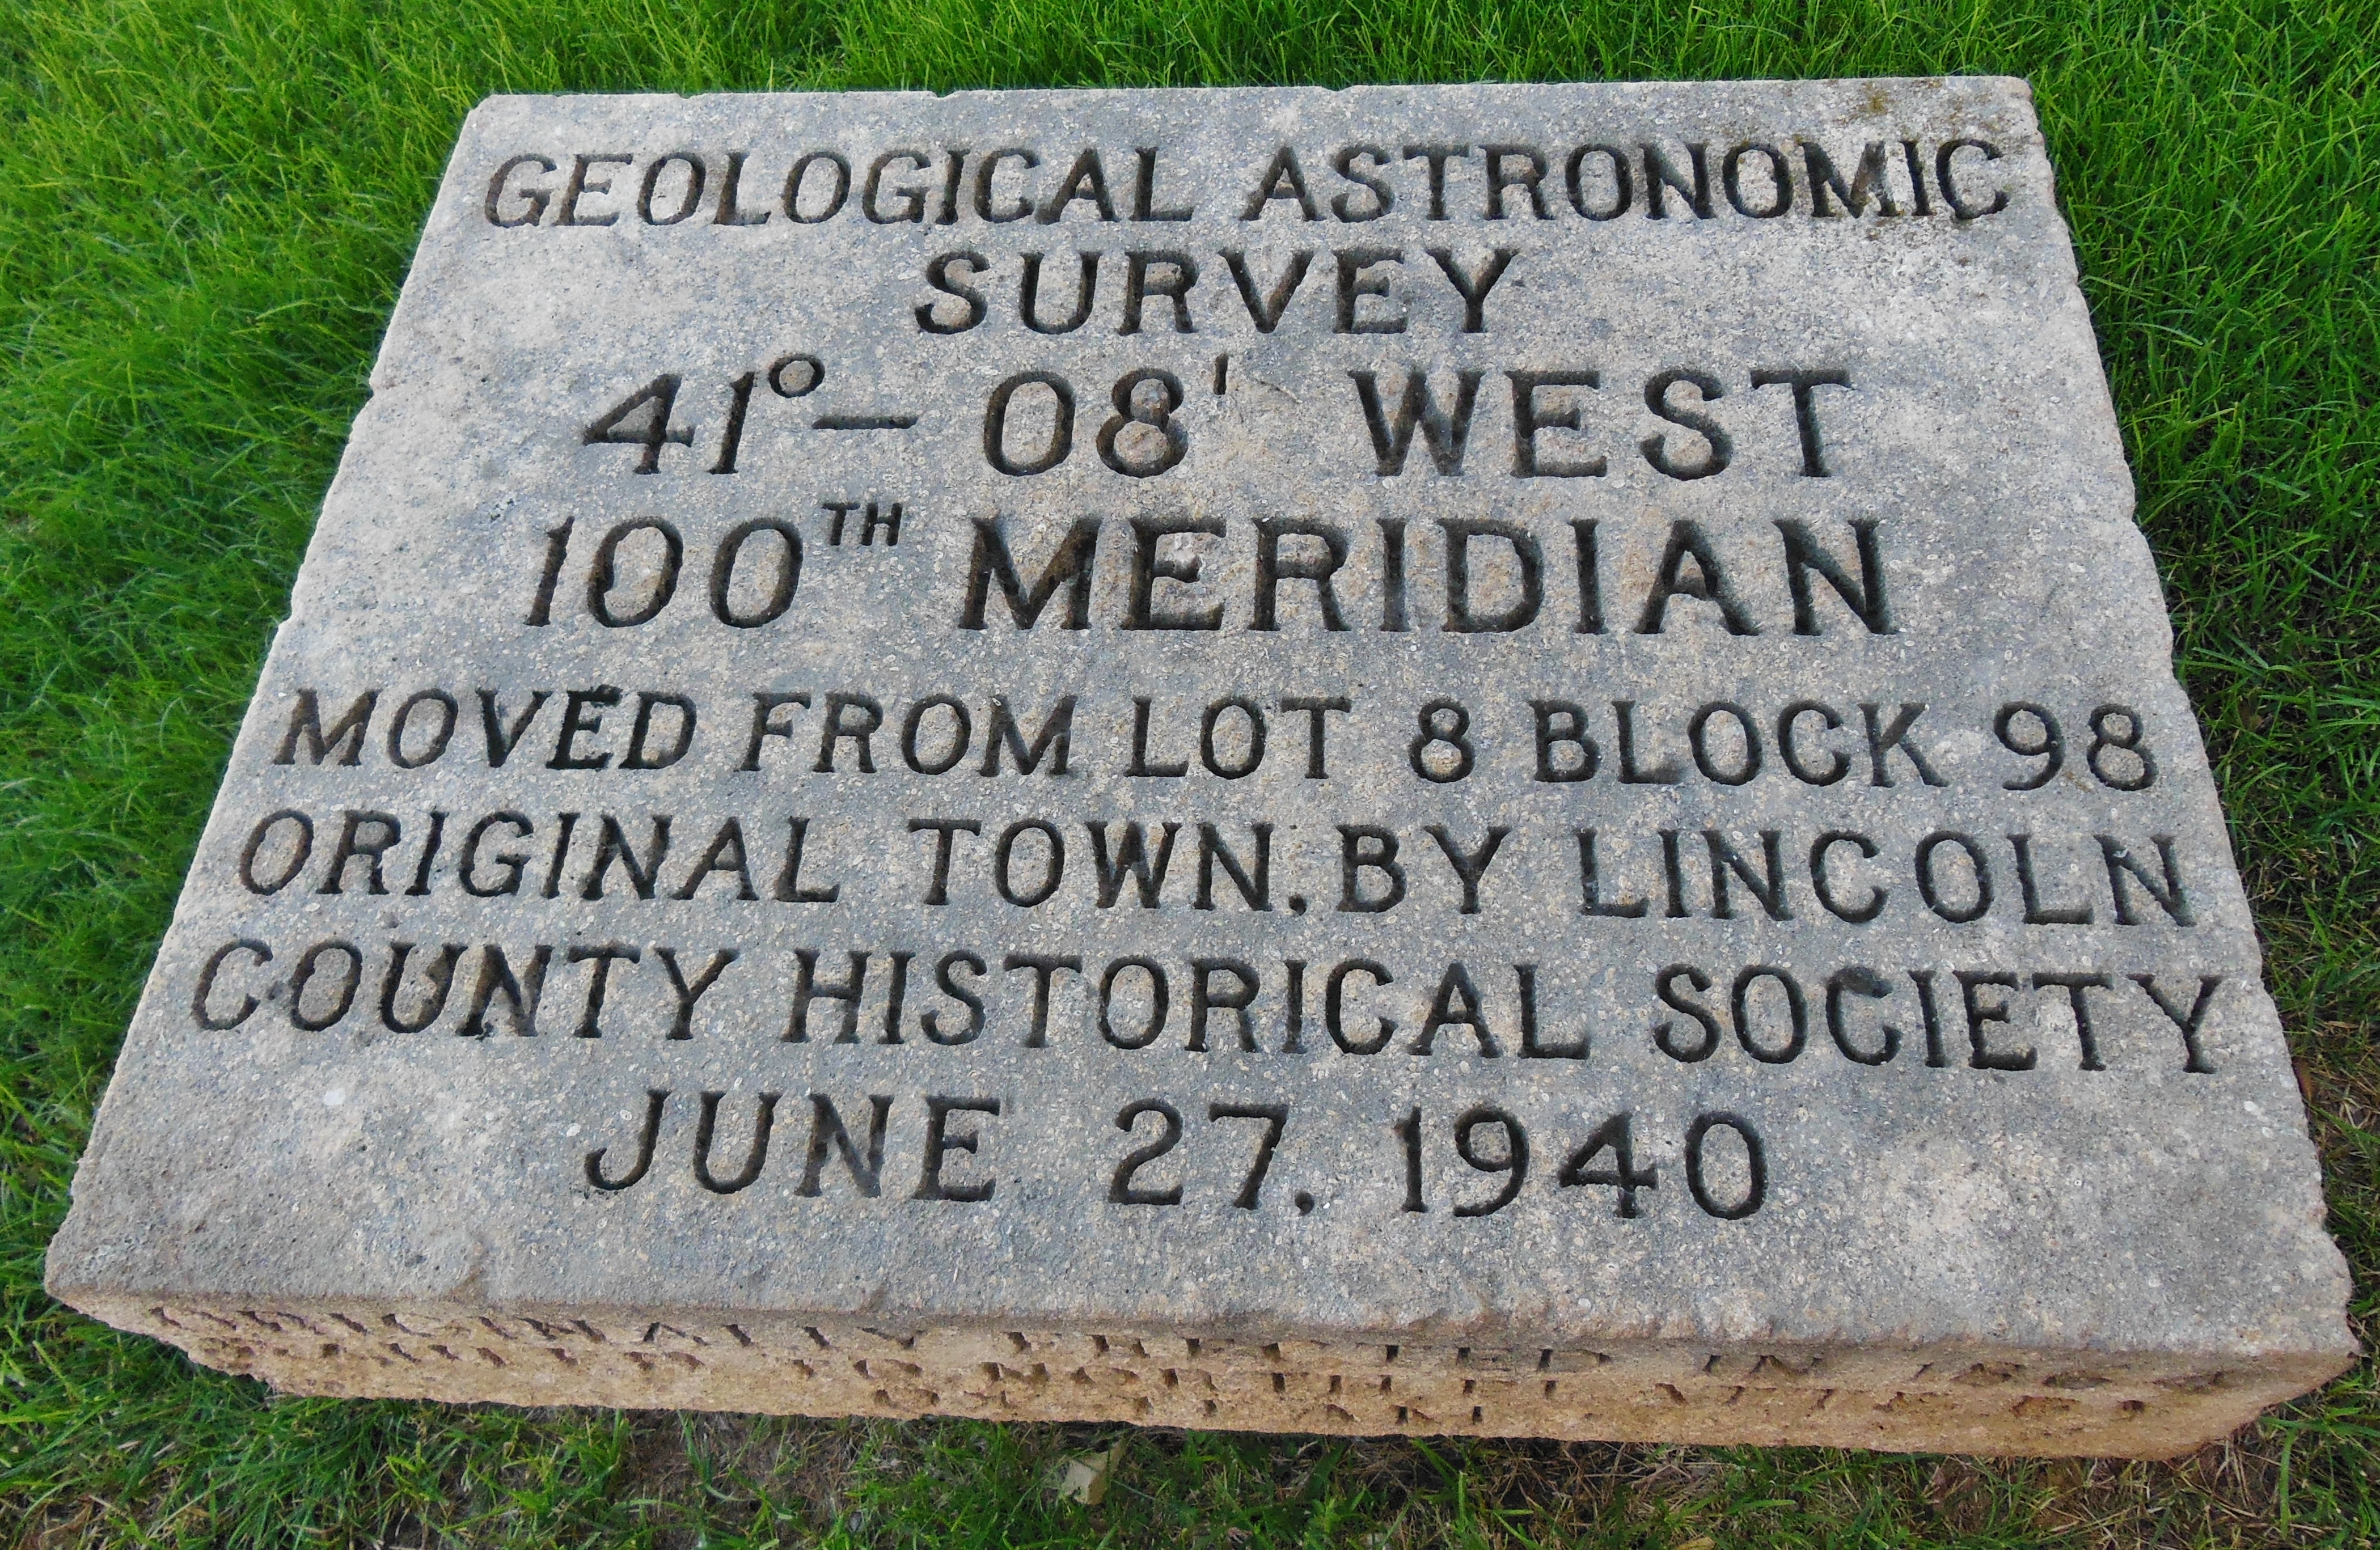 100th Meridian Marker